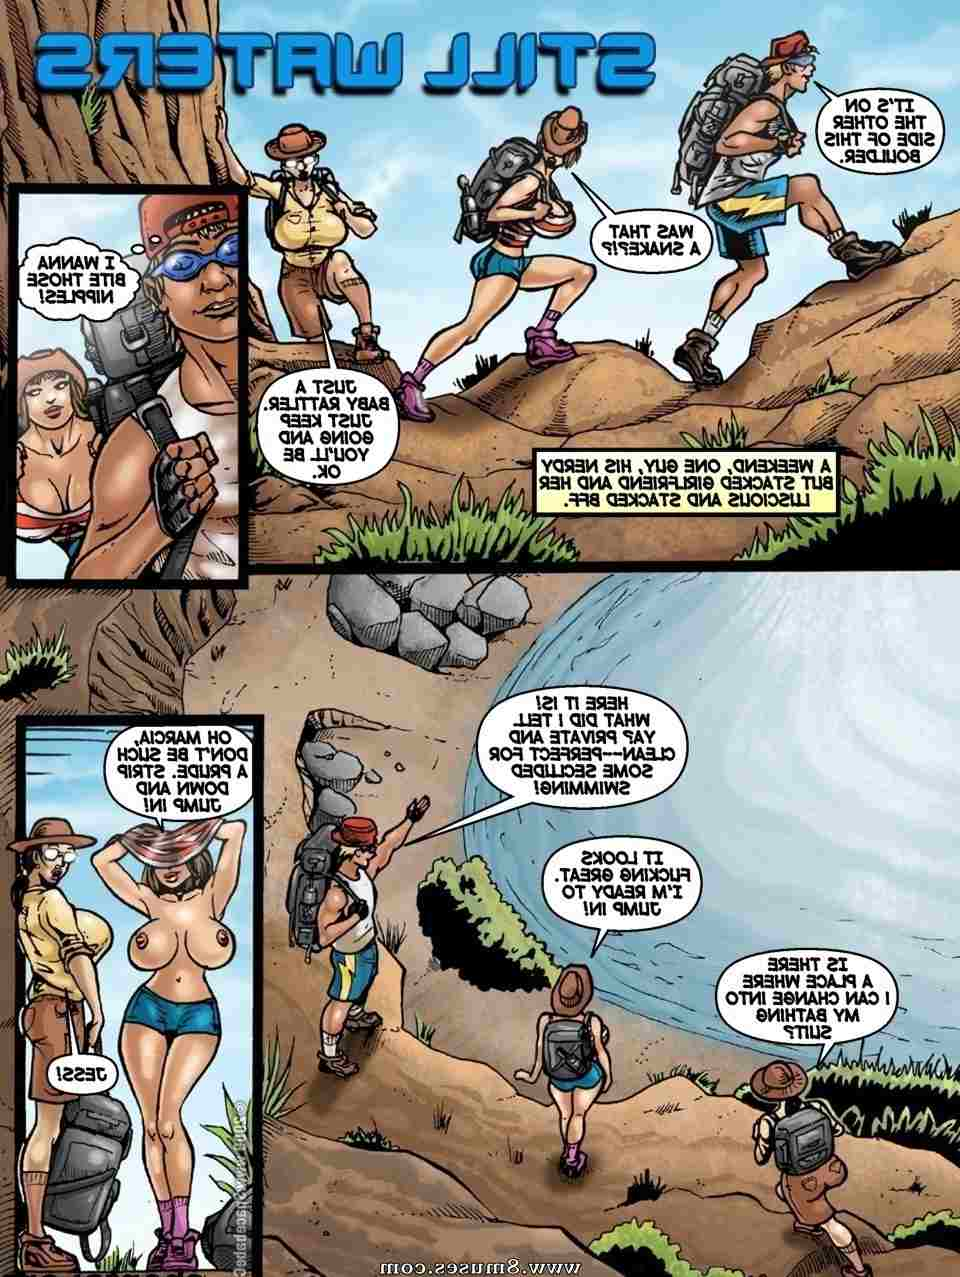 Central-Comics/Space-Babe-Central/Apart-with-pleasure Apart_with_pleasure__8muses_-_Sex_and_Porn_Comics_11.jpg